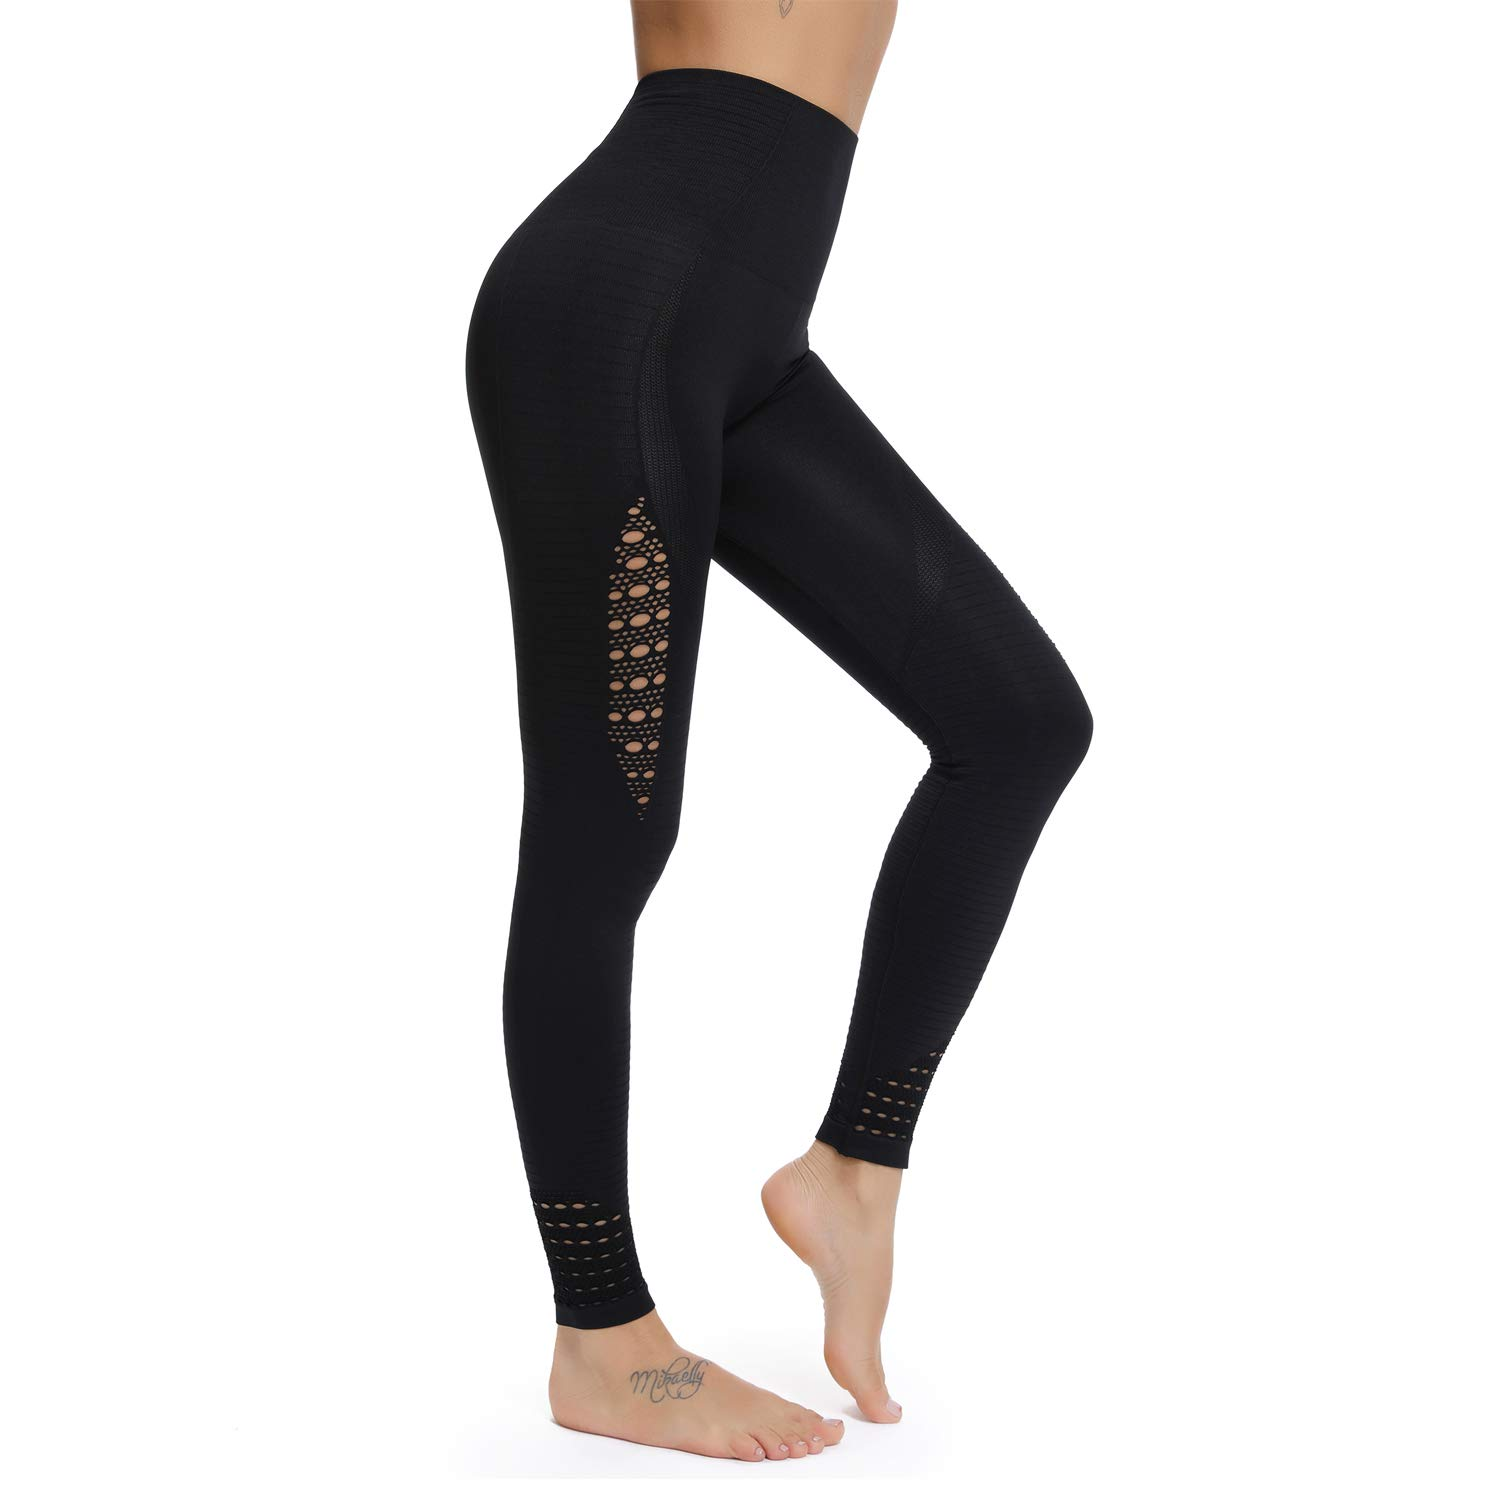 2 Black RIOJOY Yoga Pants for Women Hollow Out Elastic Waist Tummy Control Stretchy Pants Fitness Leggings Gym Compression Sports Tights